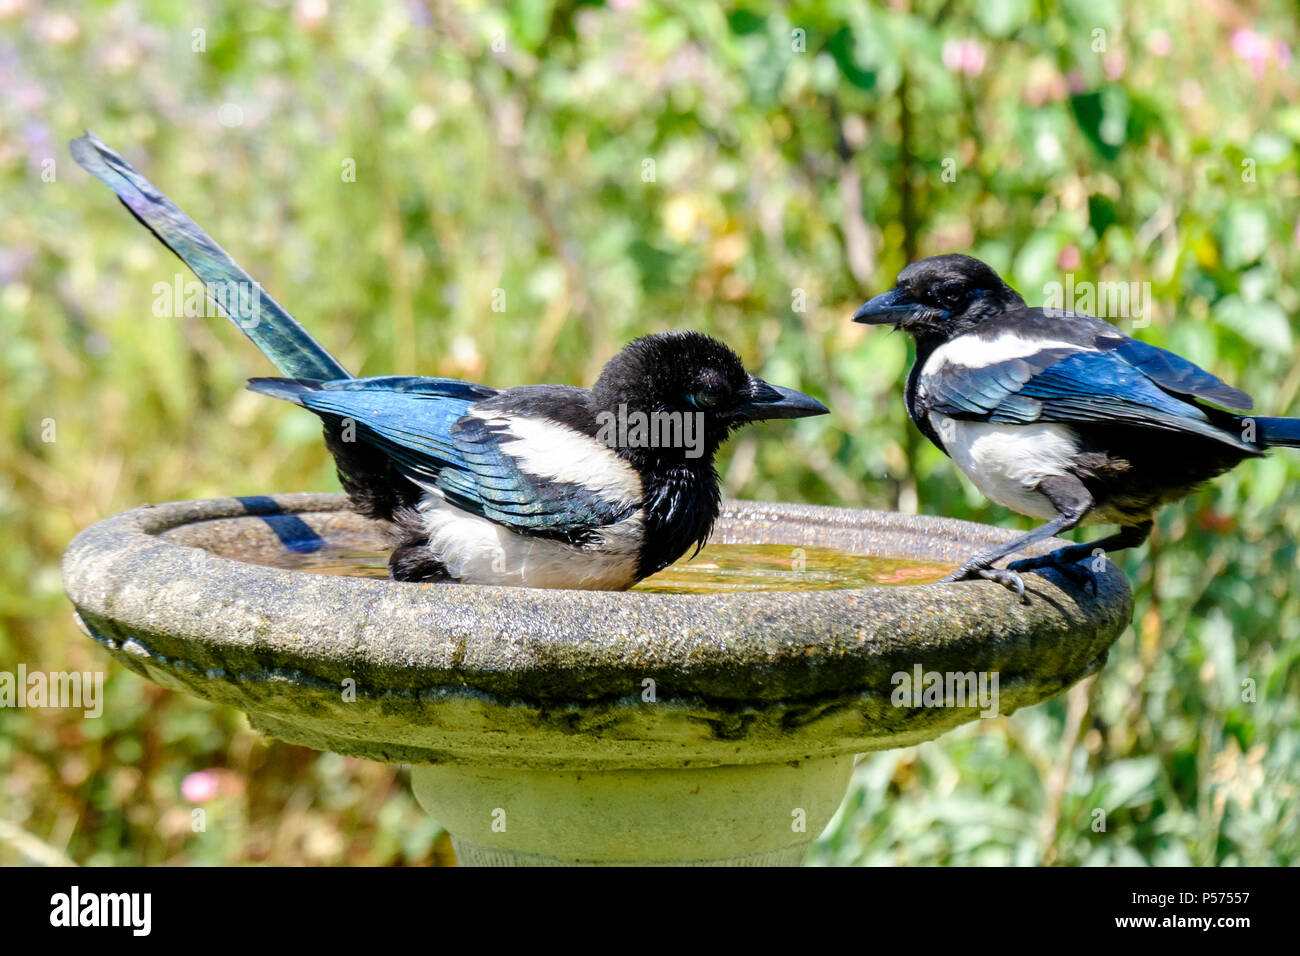 Young Magpies cool off in a London garden birdbath on a hot day - Stock Image